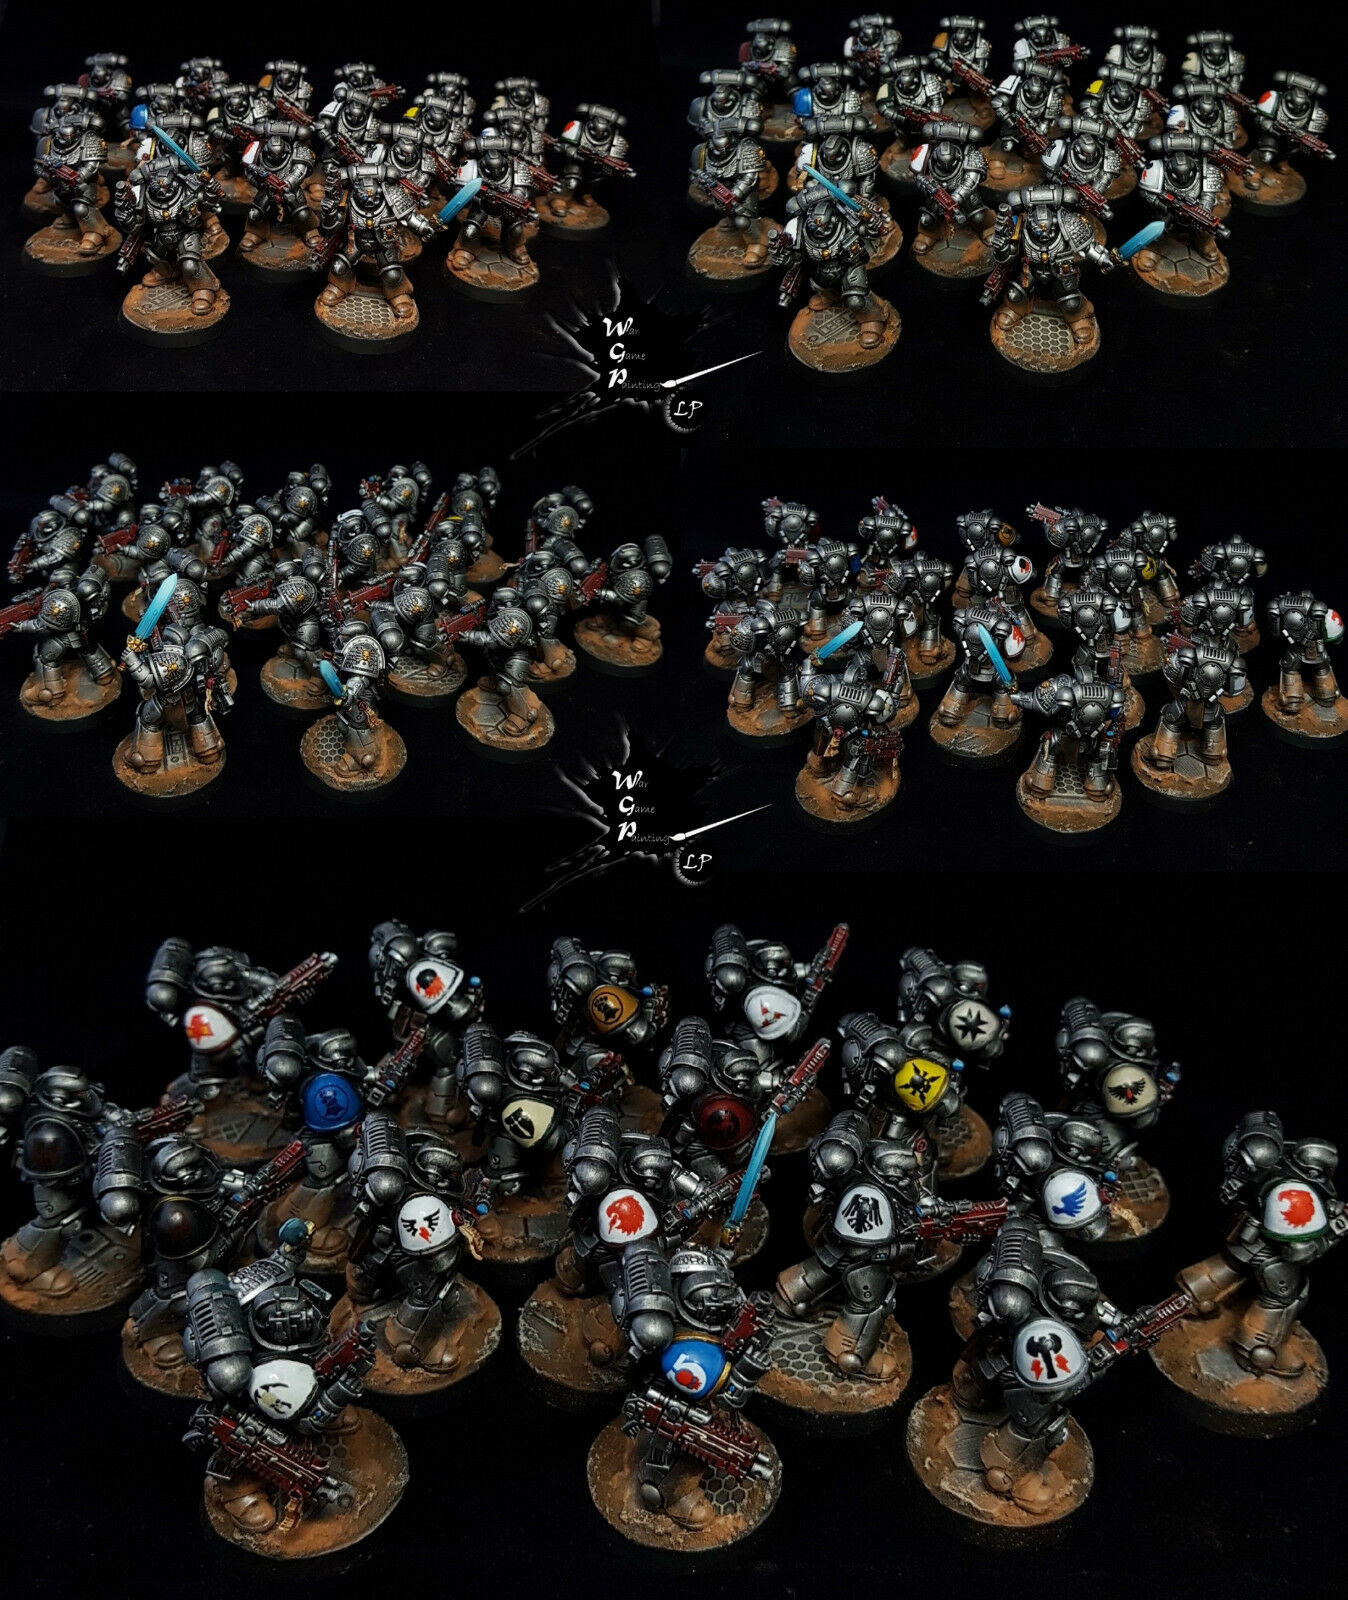 Deathwatch Primaris Apothecary Commission Painted Warhammer 40K 40K 40K 3e9b83